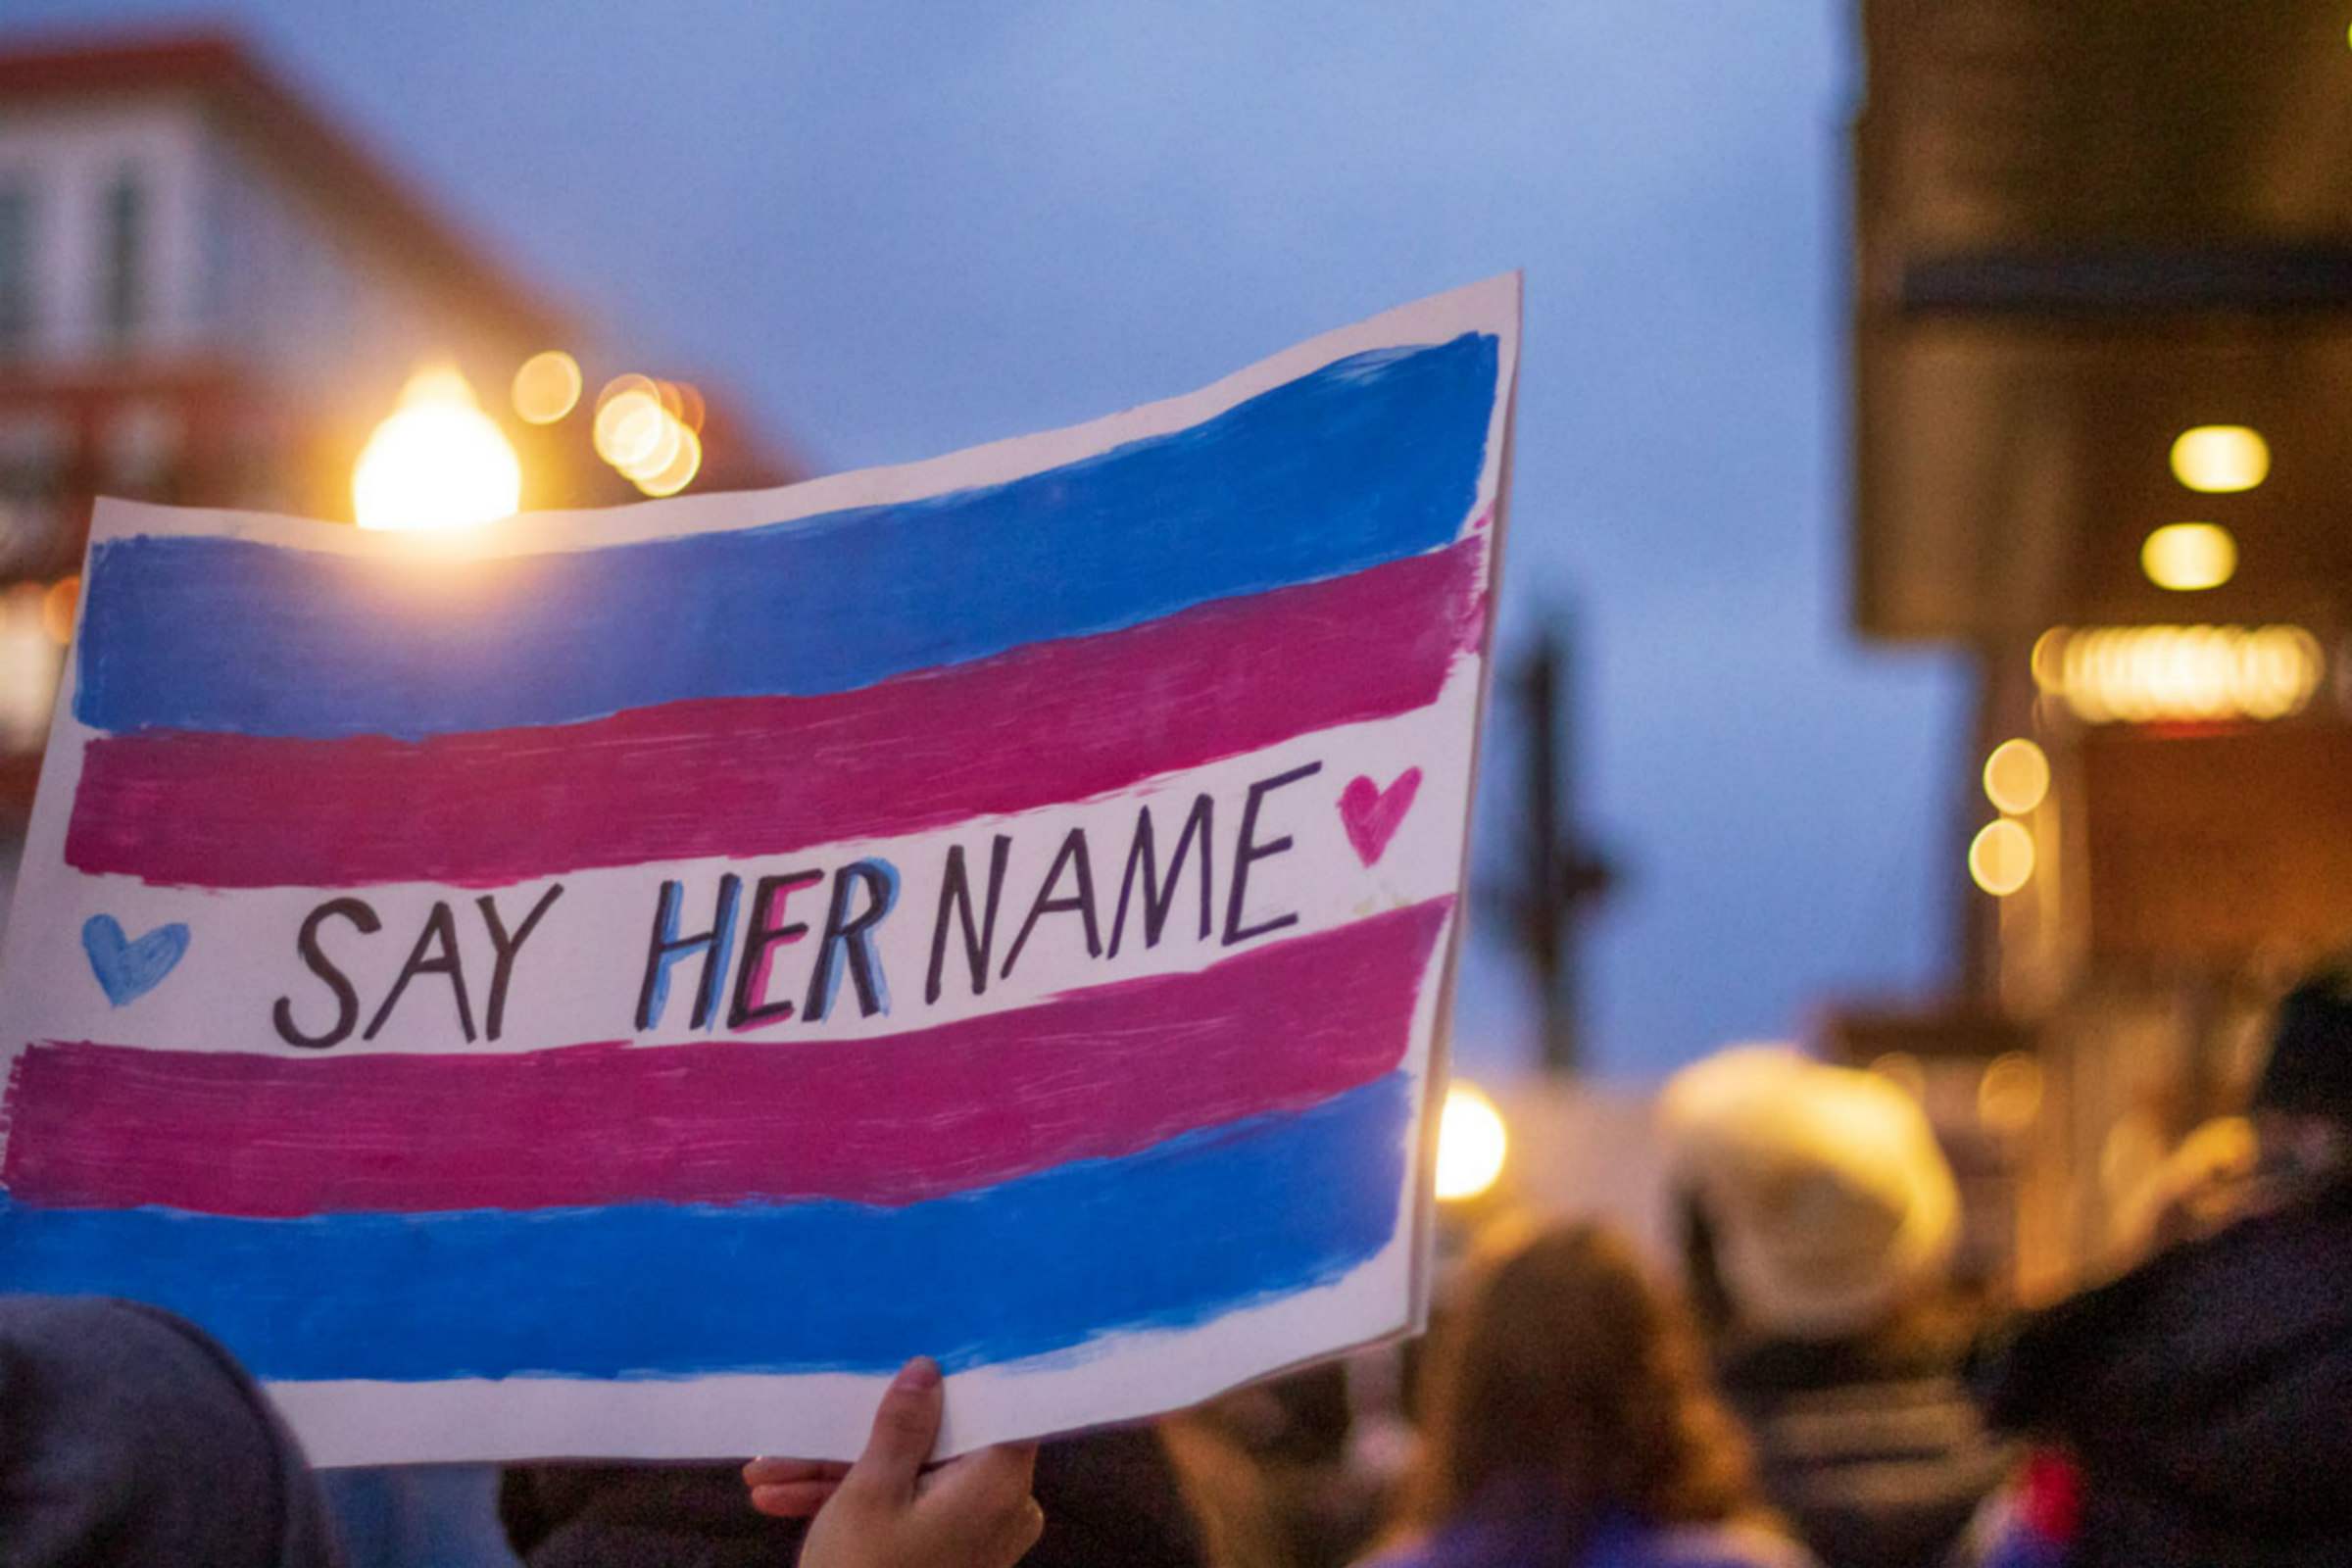 a white hand holds a white, blue, and dark purple #SayHerName sign surrounded by a blue and a purple heart during a march